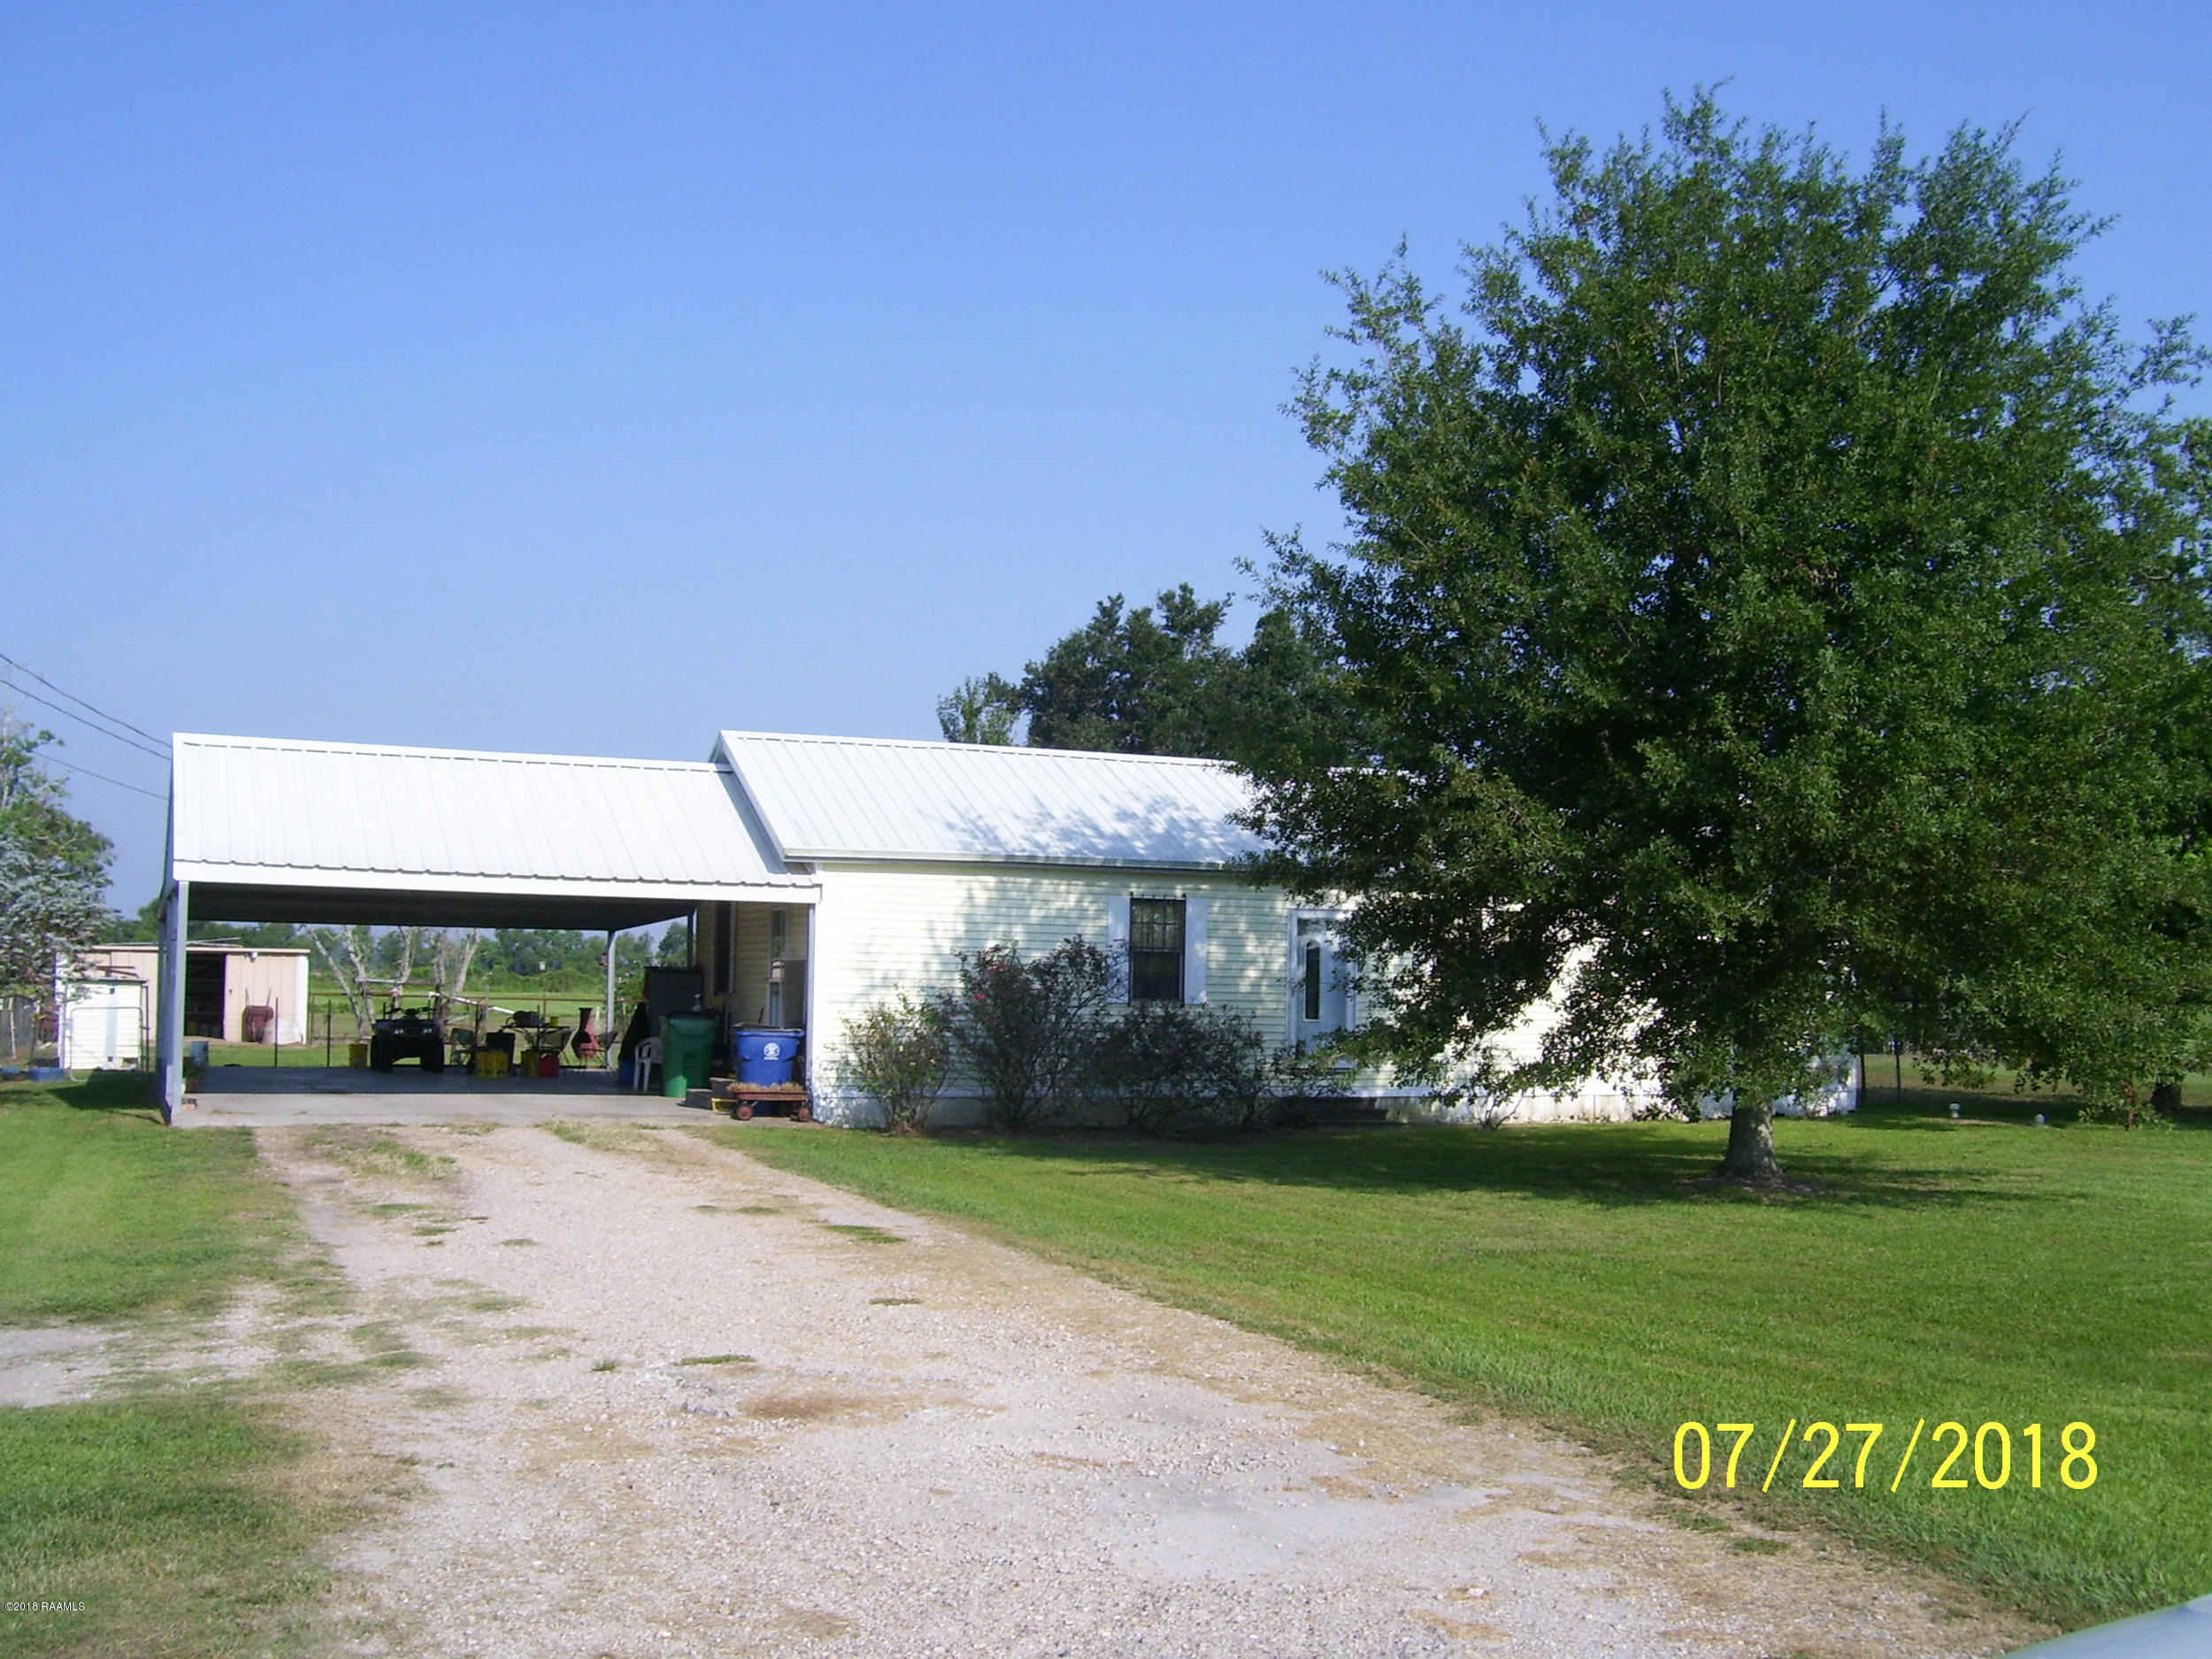 2619 Higginbotham, Church Point, LA 70525 Photo #2